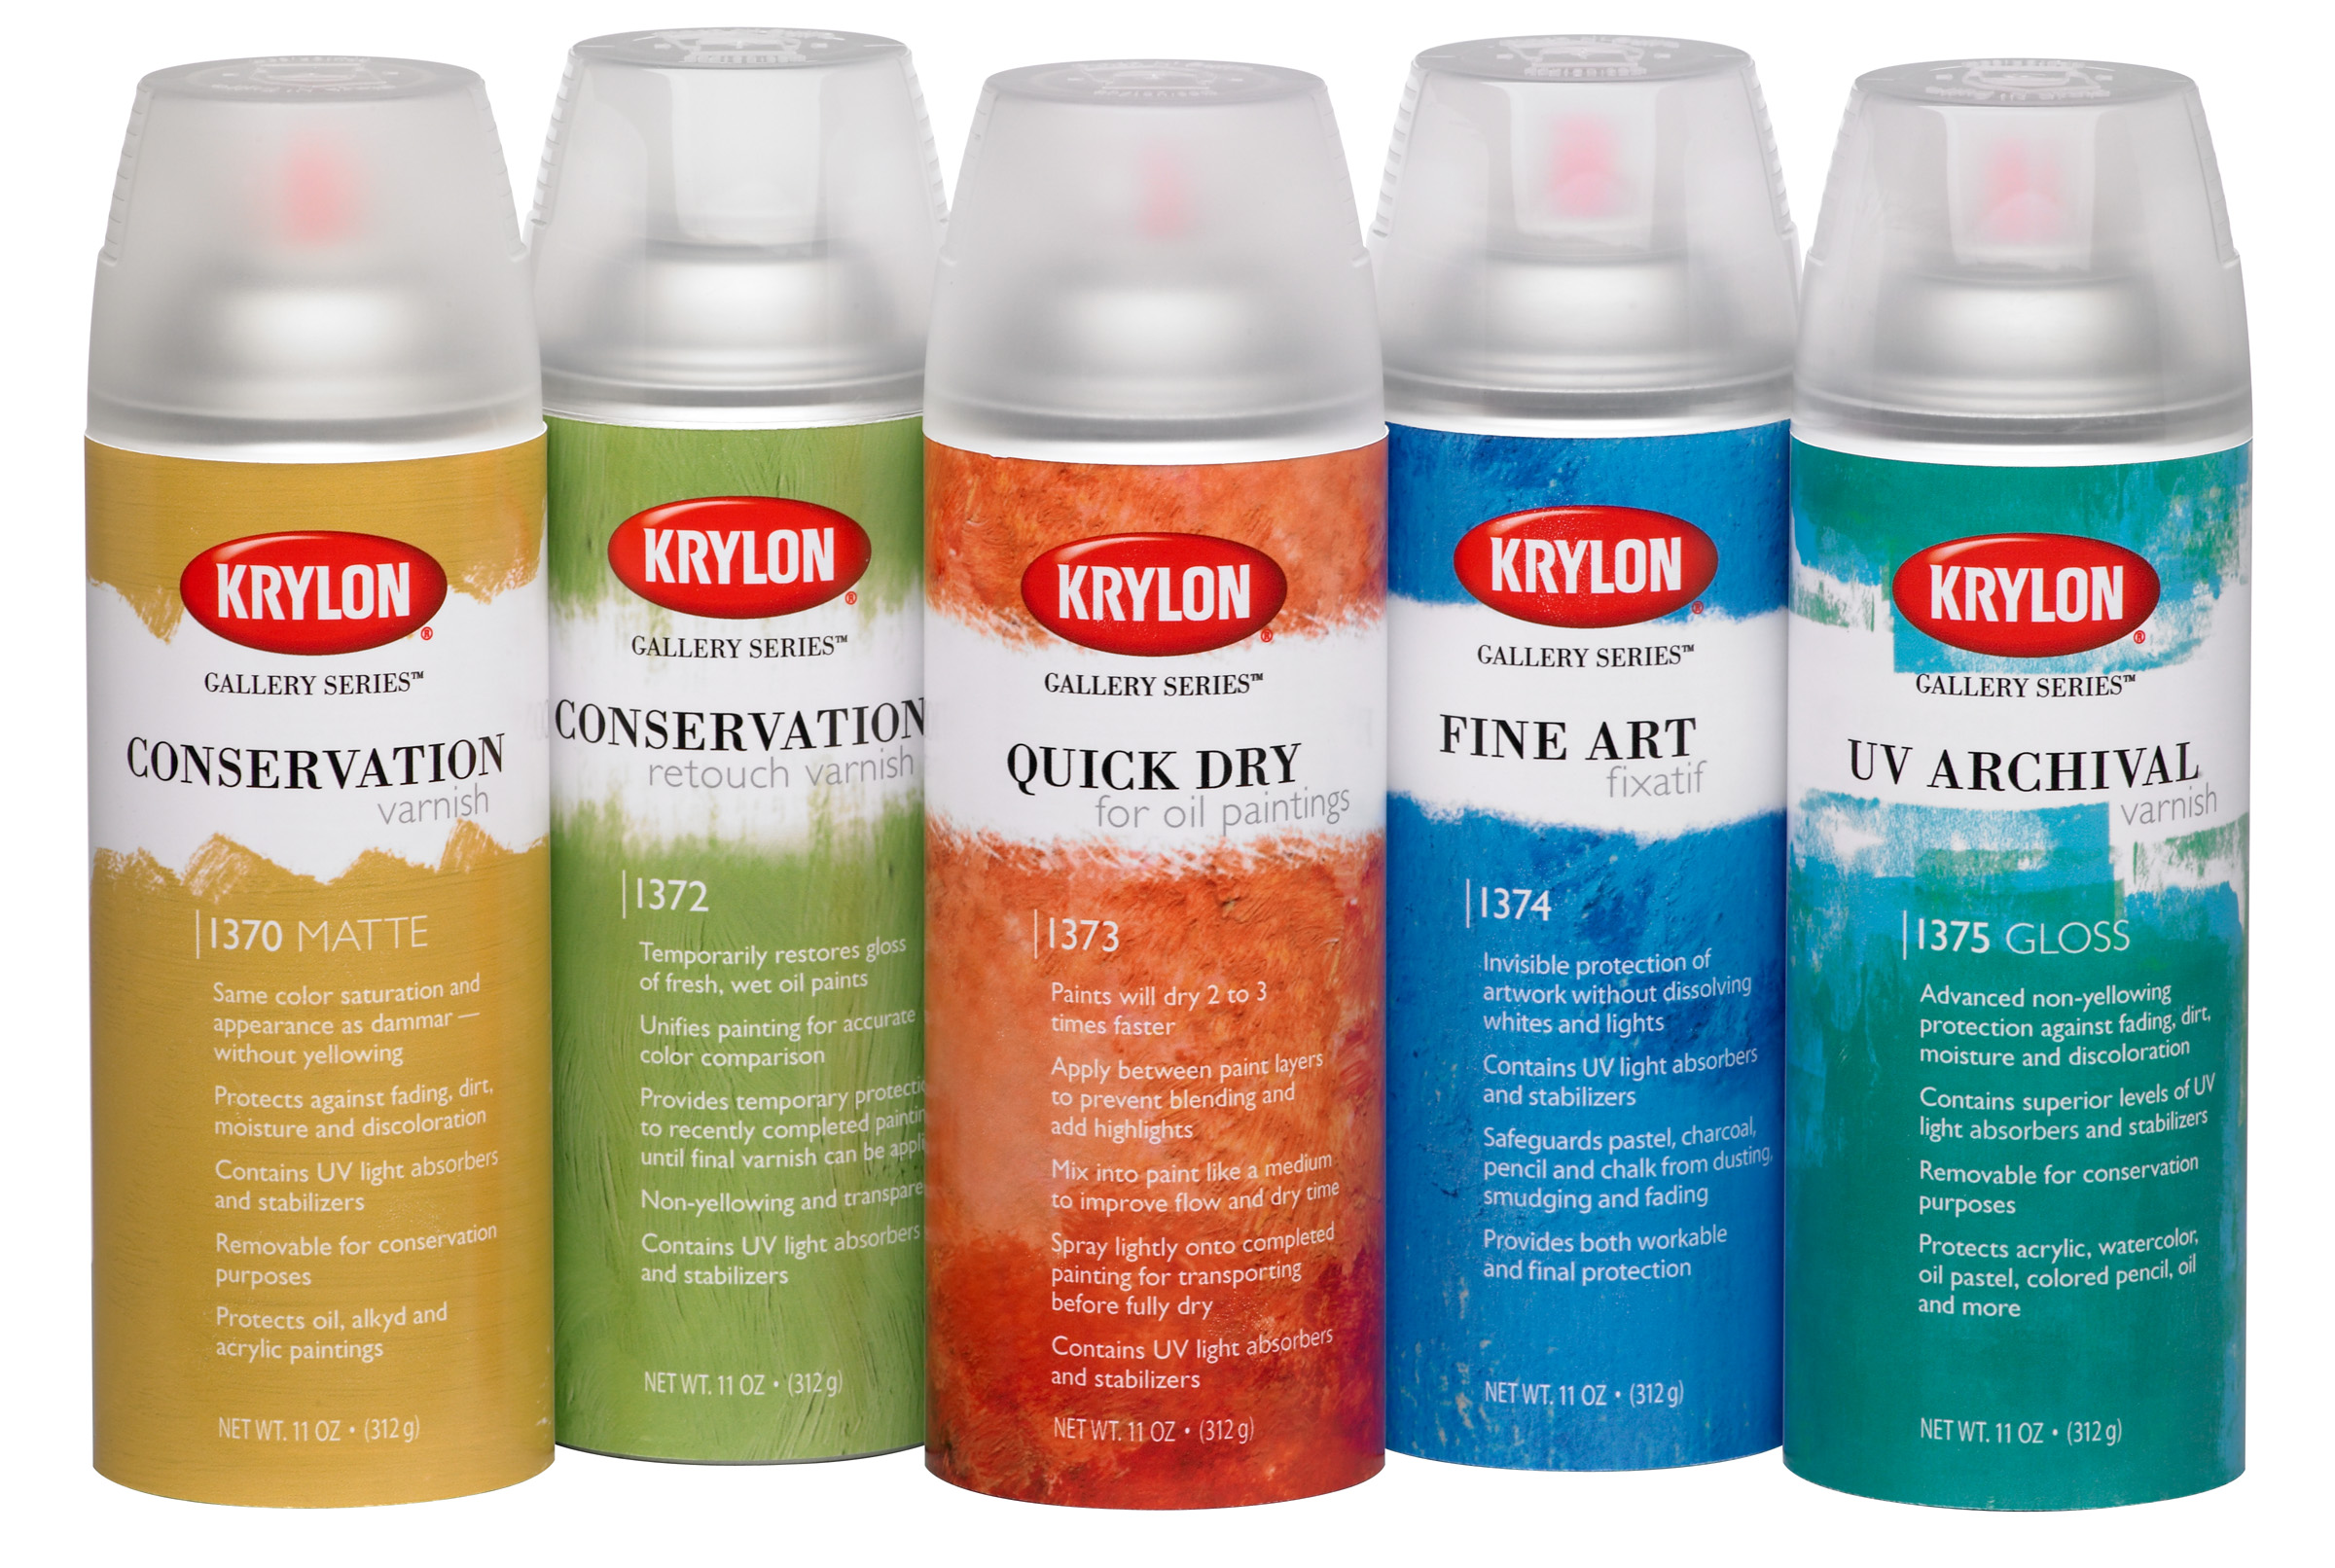 Krylon Gallery Series Spray Artist Fixatives